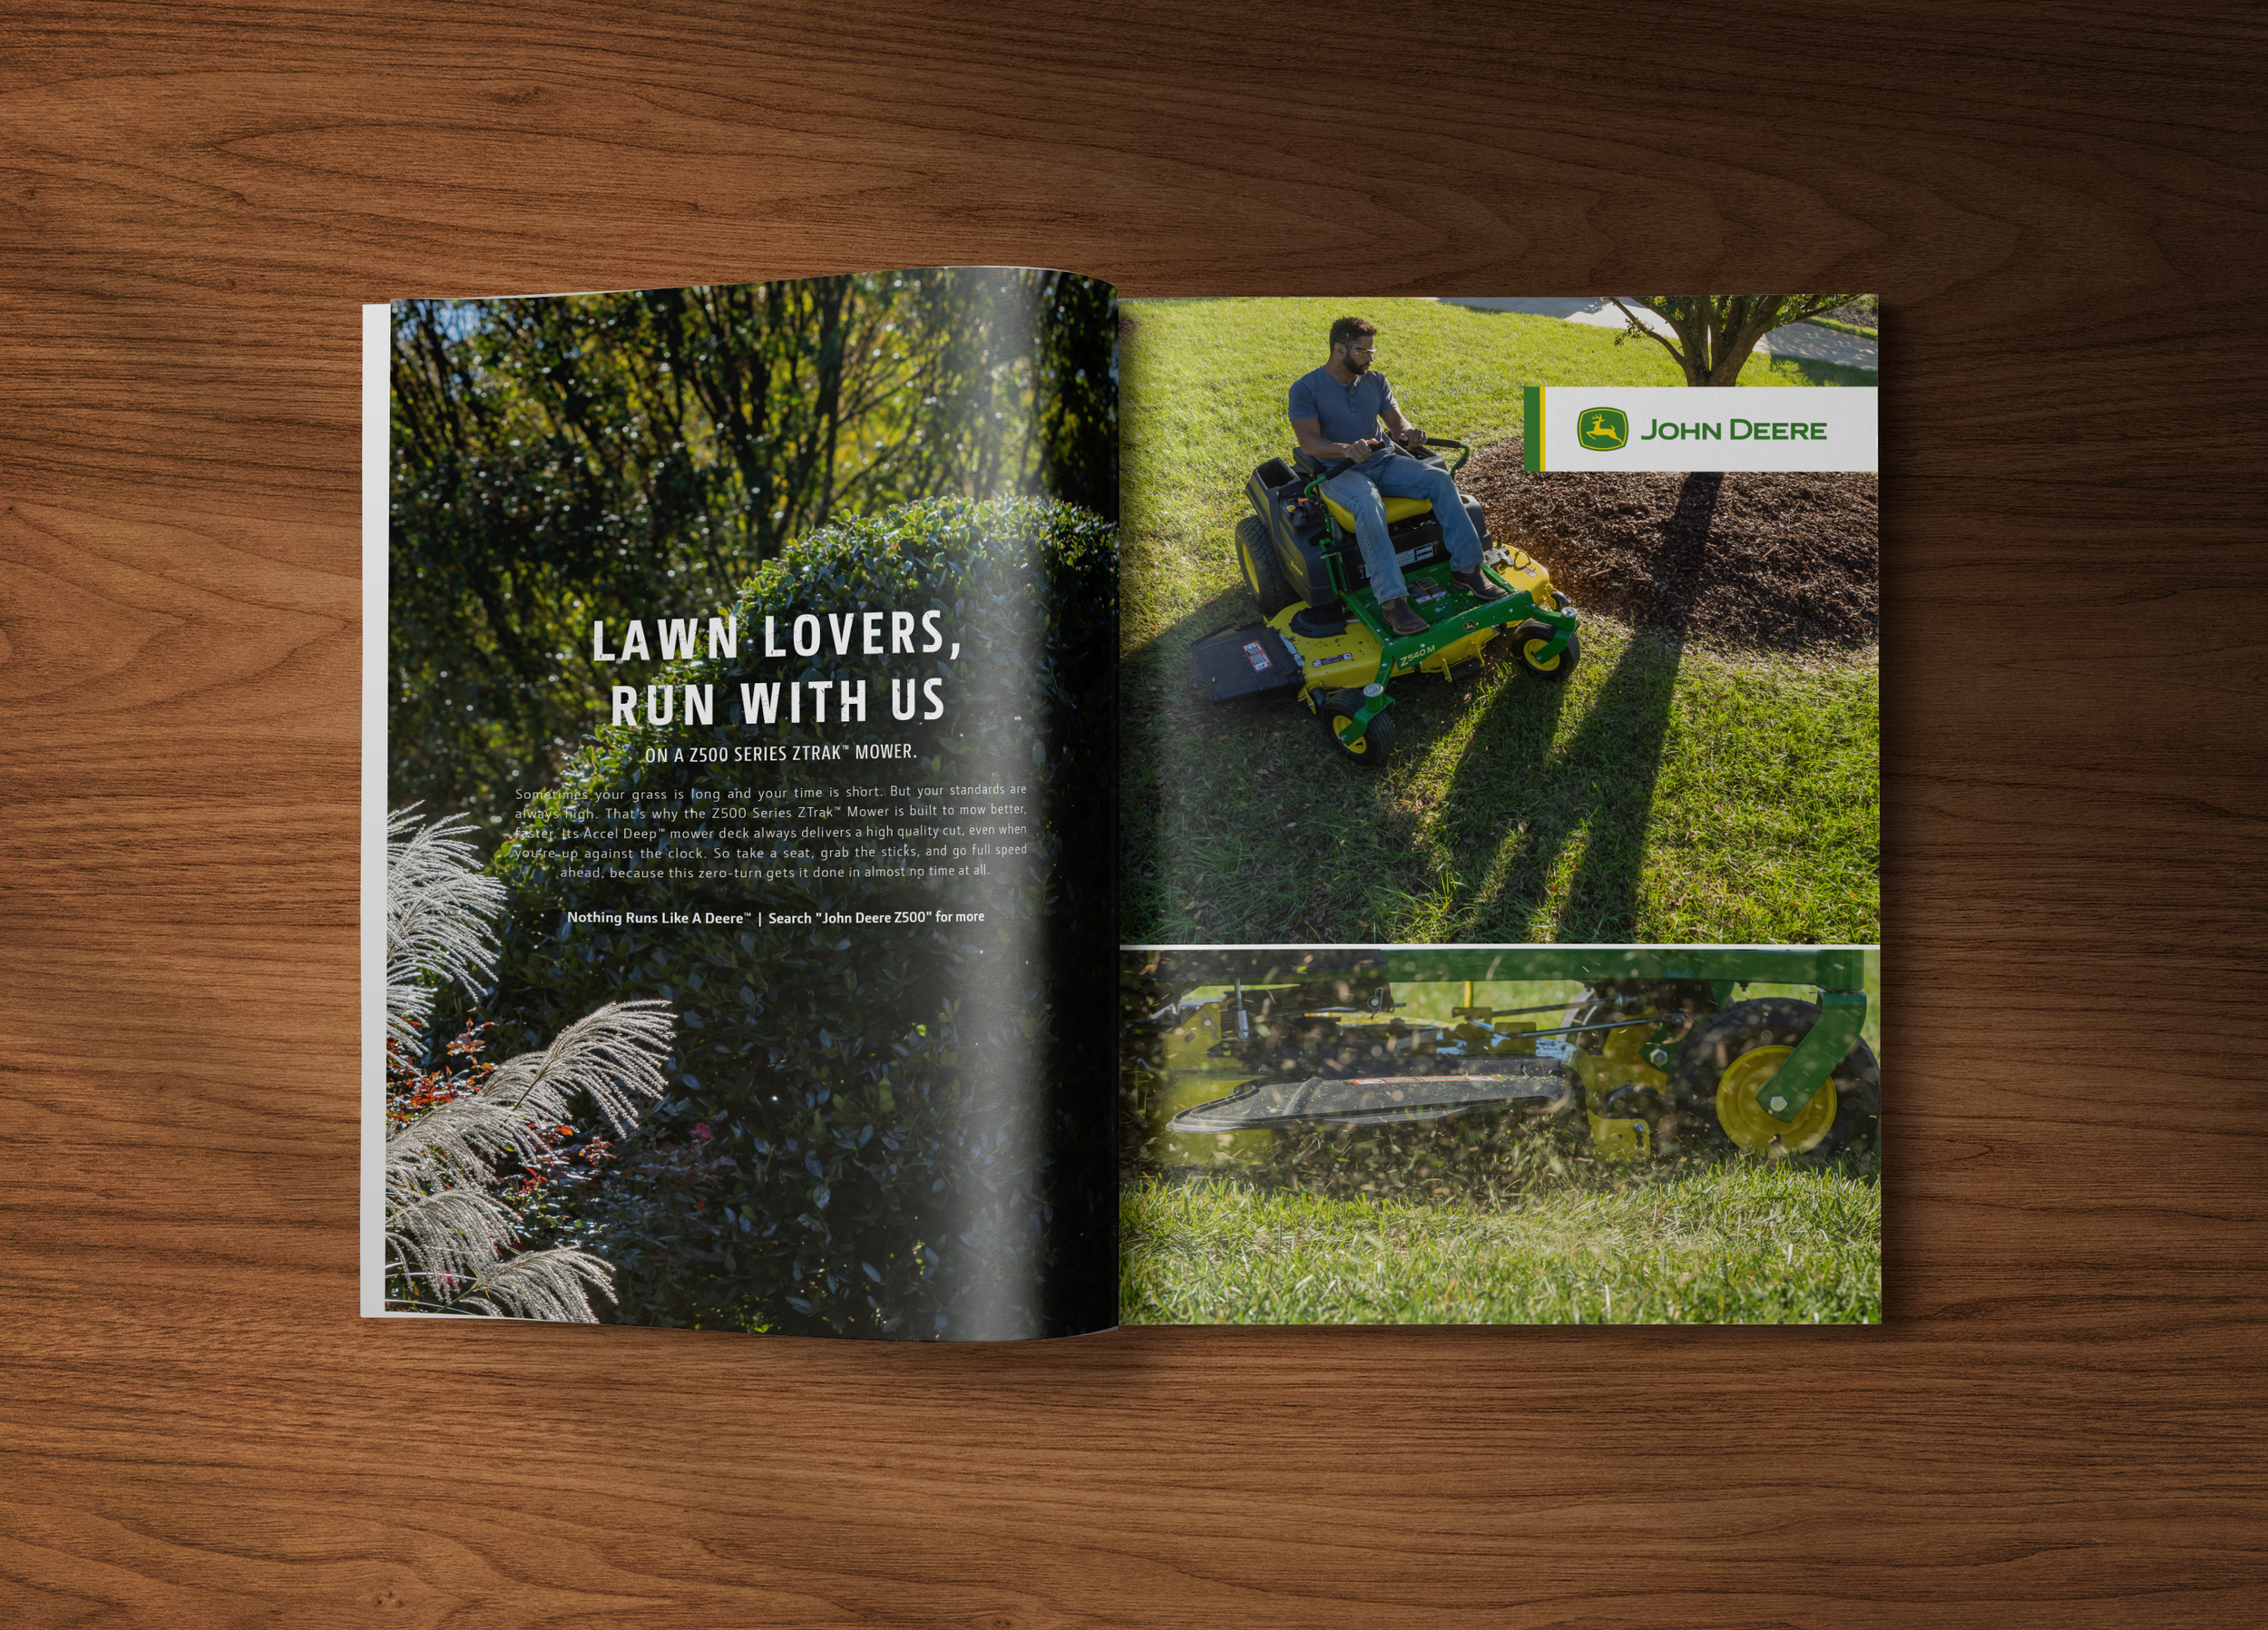 """HEADLINE:  Lawn Lovers, Run With Us  SUBHEAD:  On a Z500 Series ZTRAK™ Mower.  BODY:  Sometimes your grass is long and your time is short. But your standards are always high. That's why the Z500 Series ZTRAK™ Mower is built to mow better, faster. Our Accel Deep™ mower decks always deliver a high quality cut, even when you're up against the clock. So take a seat, grab the sticks, and go full speed ahead, because this zero-turn gets it done in almost no time at all.  TAG:  Nothing Runs Like A Deere™  CTA:  Search """"John Deere Z500"""" for more"""